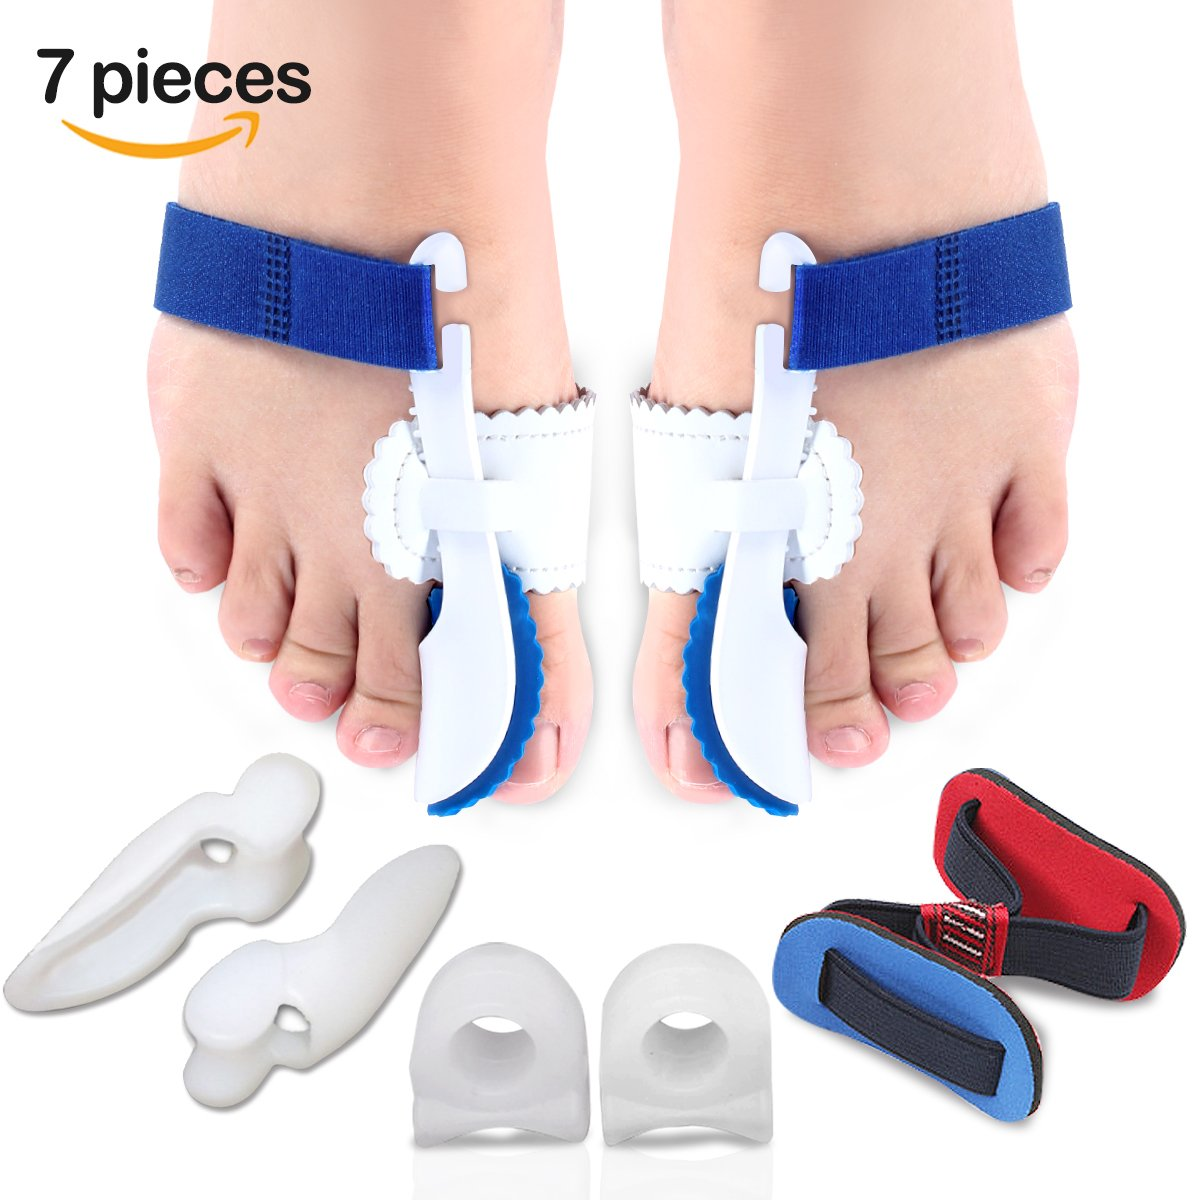 Bunion Corrector & Bunion Relief Kits(7 PCS) - Adjustable Bunion Splint and Soft Bunion Pads for Treat Pain in Hallux Valgus, Big Toe Joint, Hammer Toe,Toe Spacers Straighteners for Men and Women